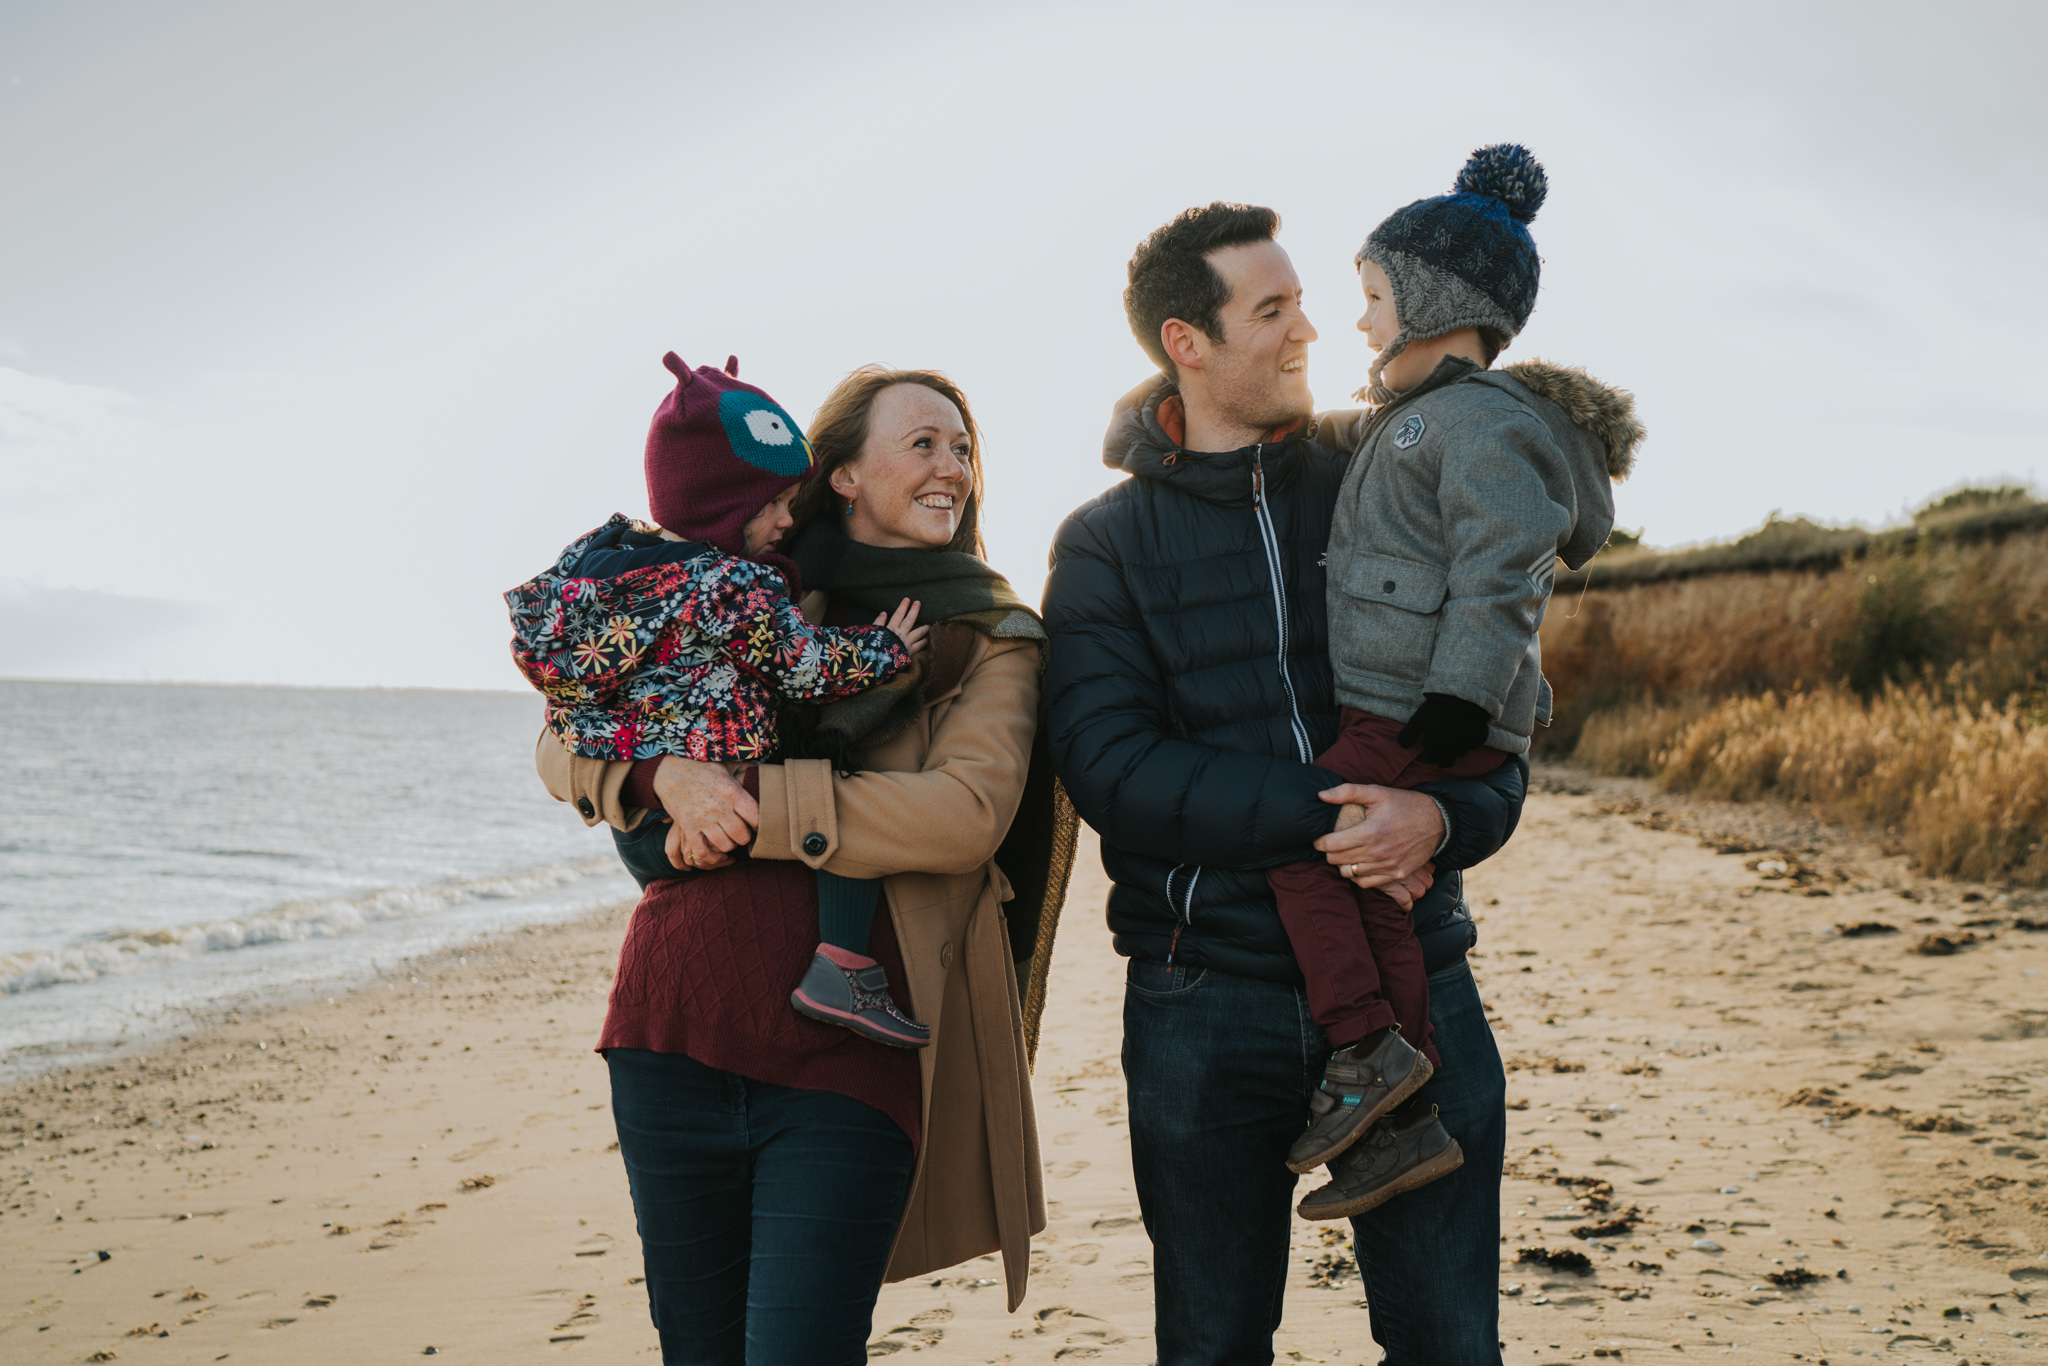 bushell-family-session-beach-cudmore-grove-lifestyle-grace-elizabeth-colchester-essex-alternative-relaxed-wedding-family-photography-devon-suffolk-norfolk-essex (5 of 34).jpg